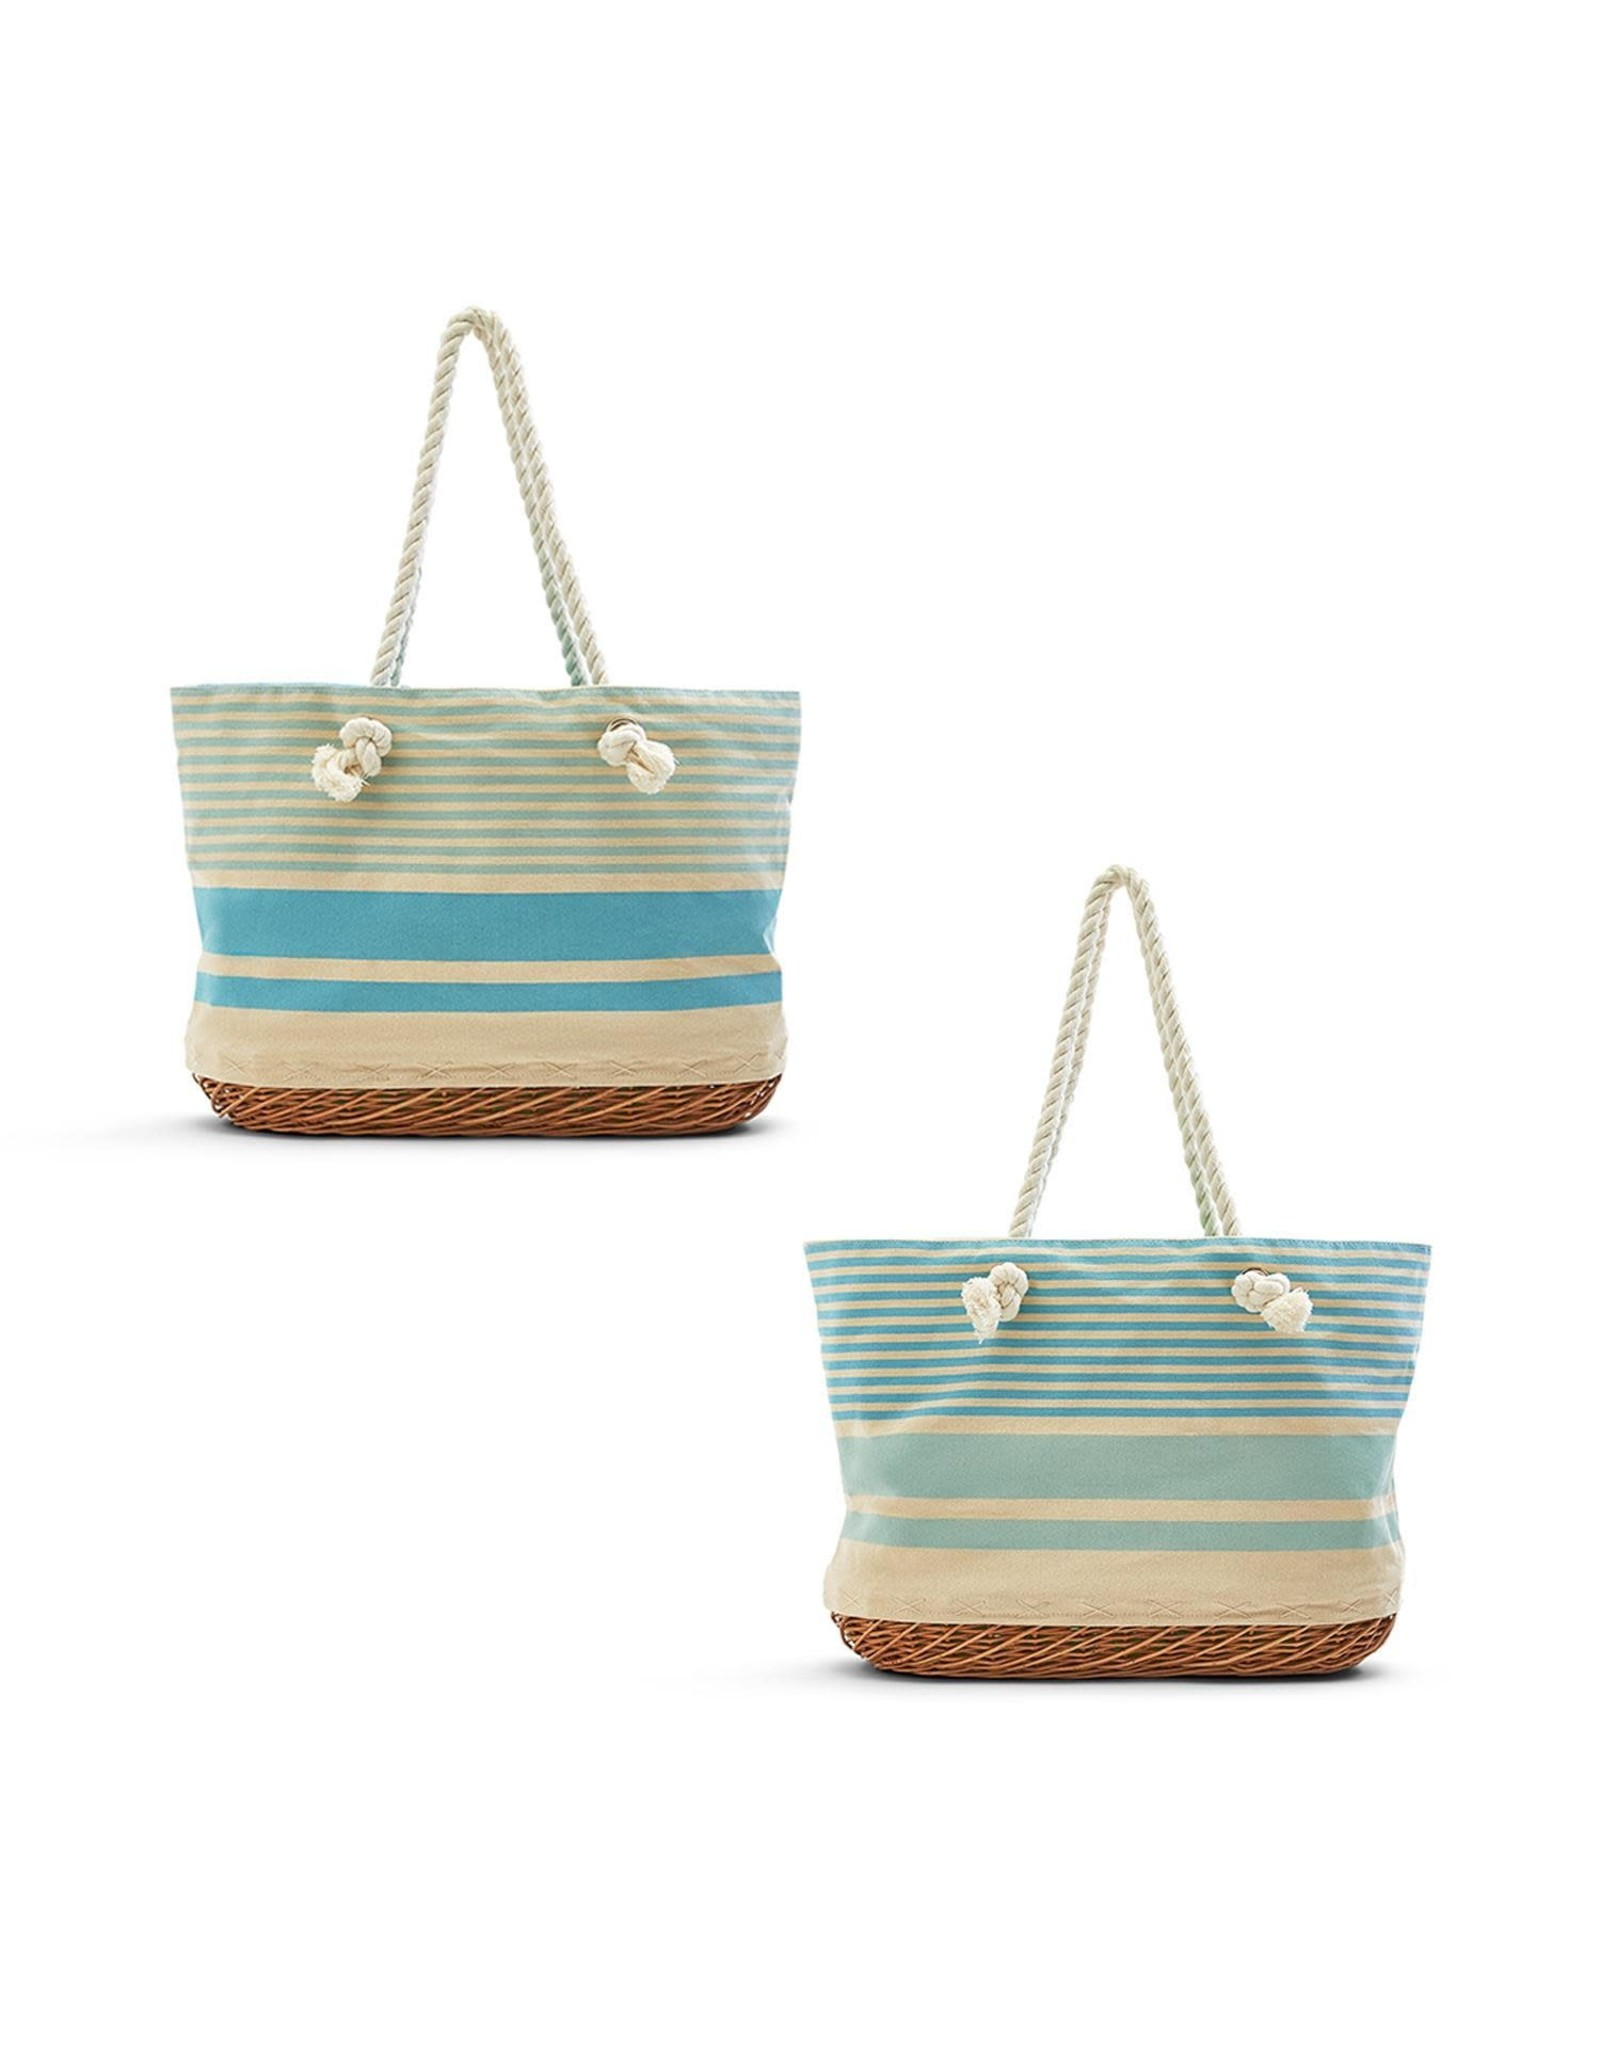 Ropes & Stripes Tote